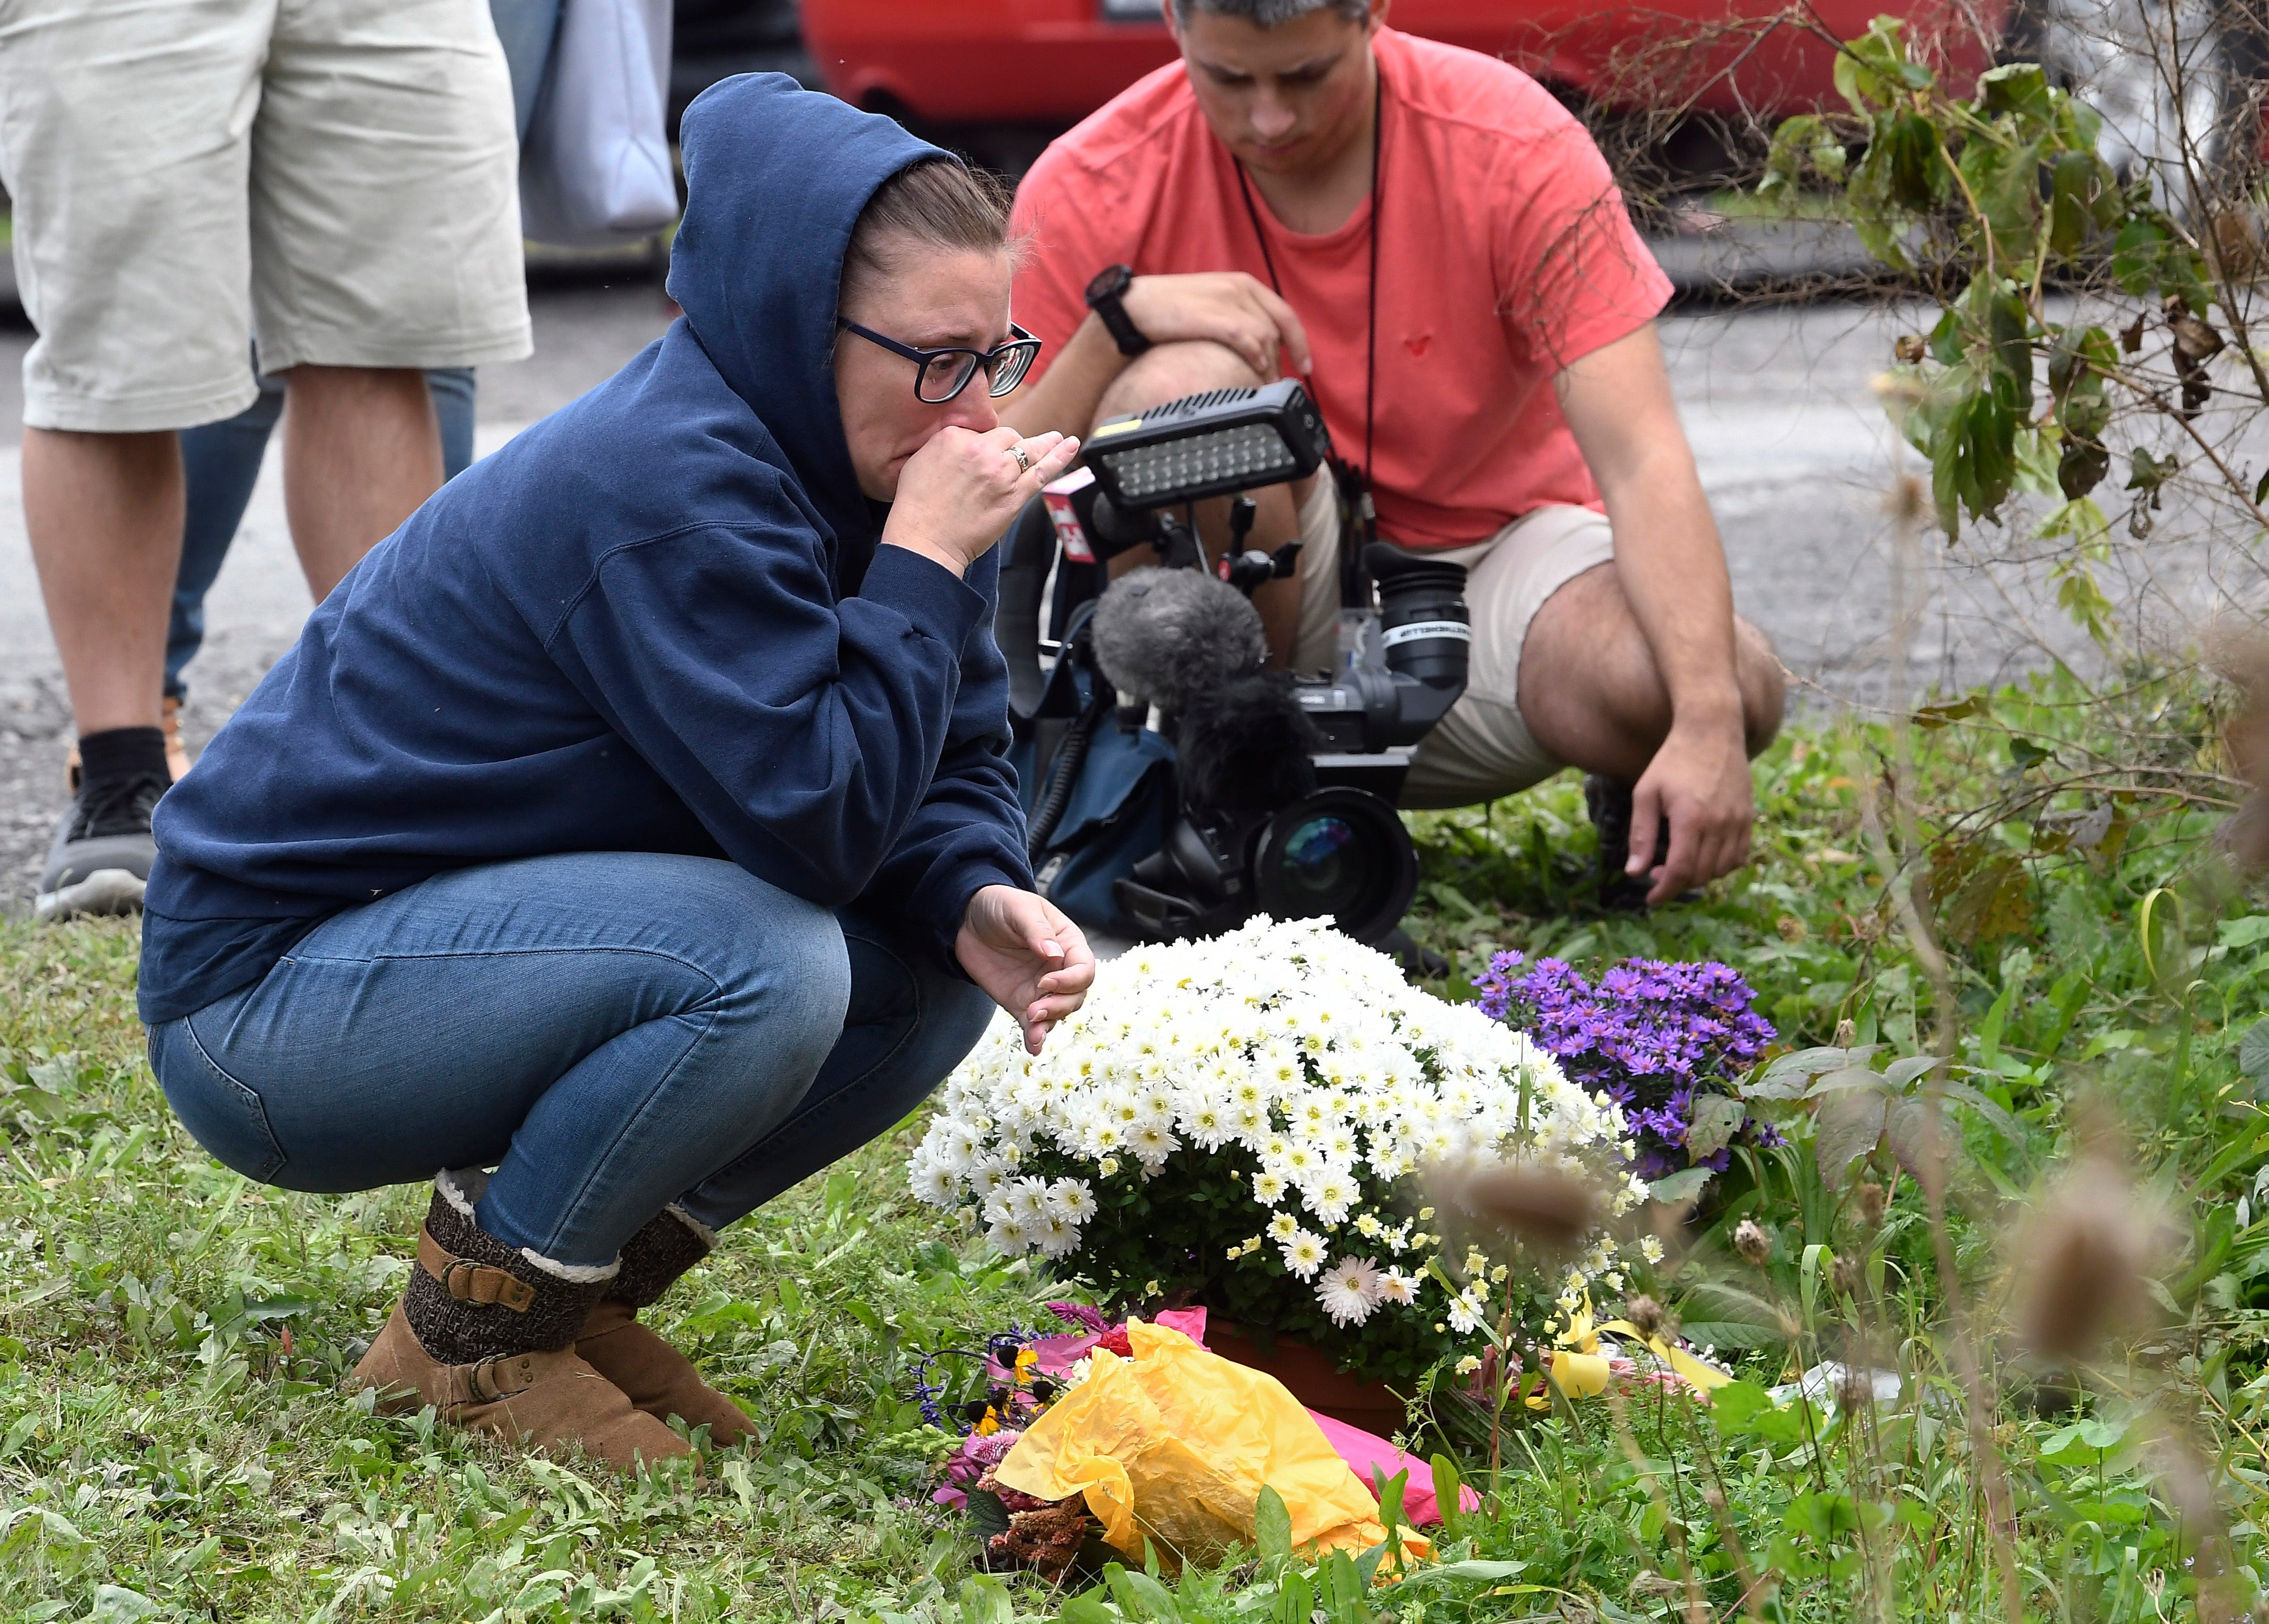 Limo failed inspection, driver lacked 'appropriate' license: What we know about Schoharie crash that killed 20